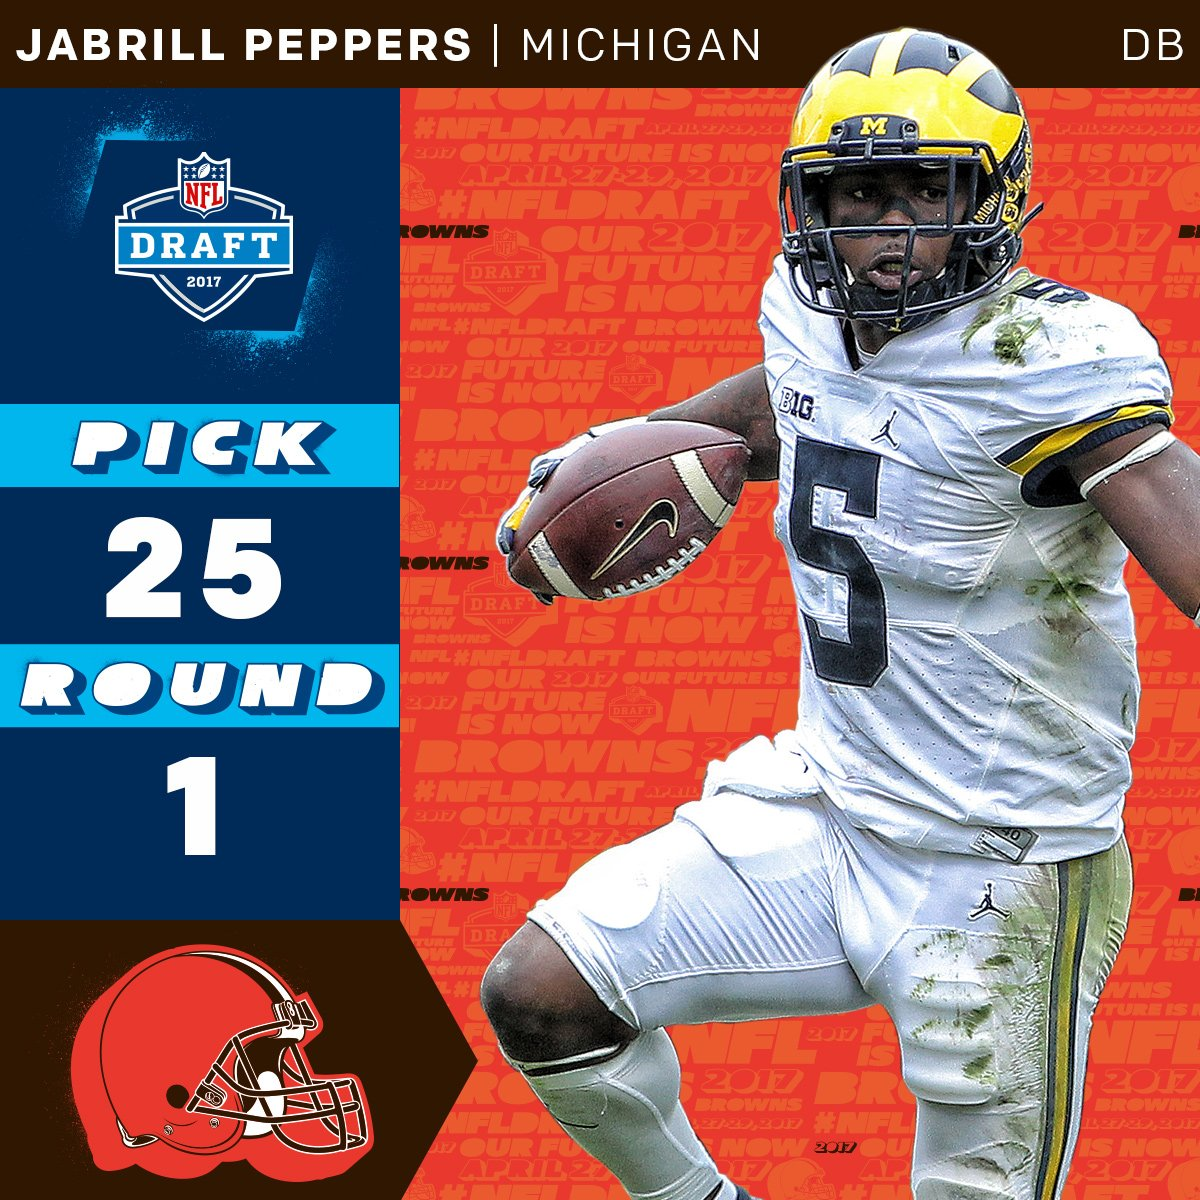 With the 25th overall pick, the @Browns select @UMichFootball DB @Jabr...